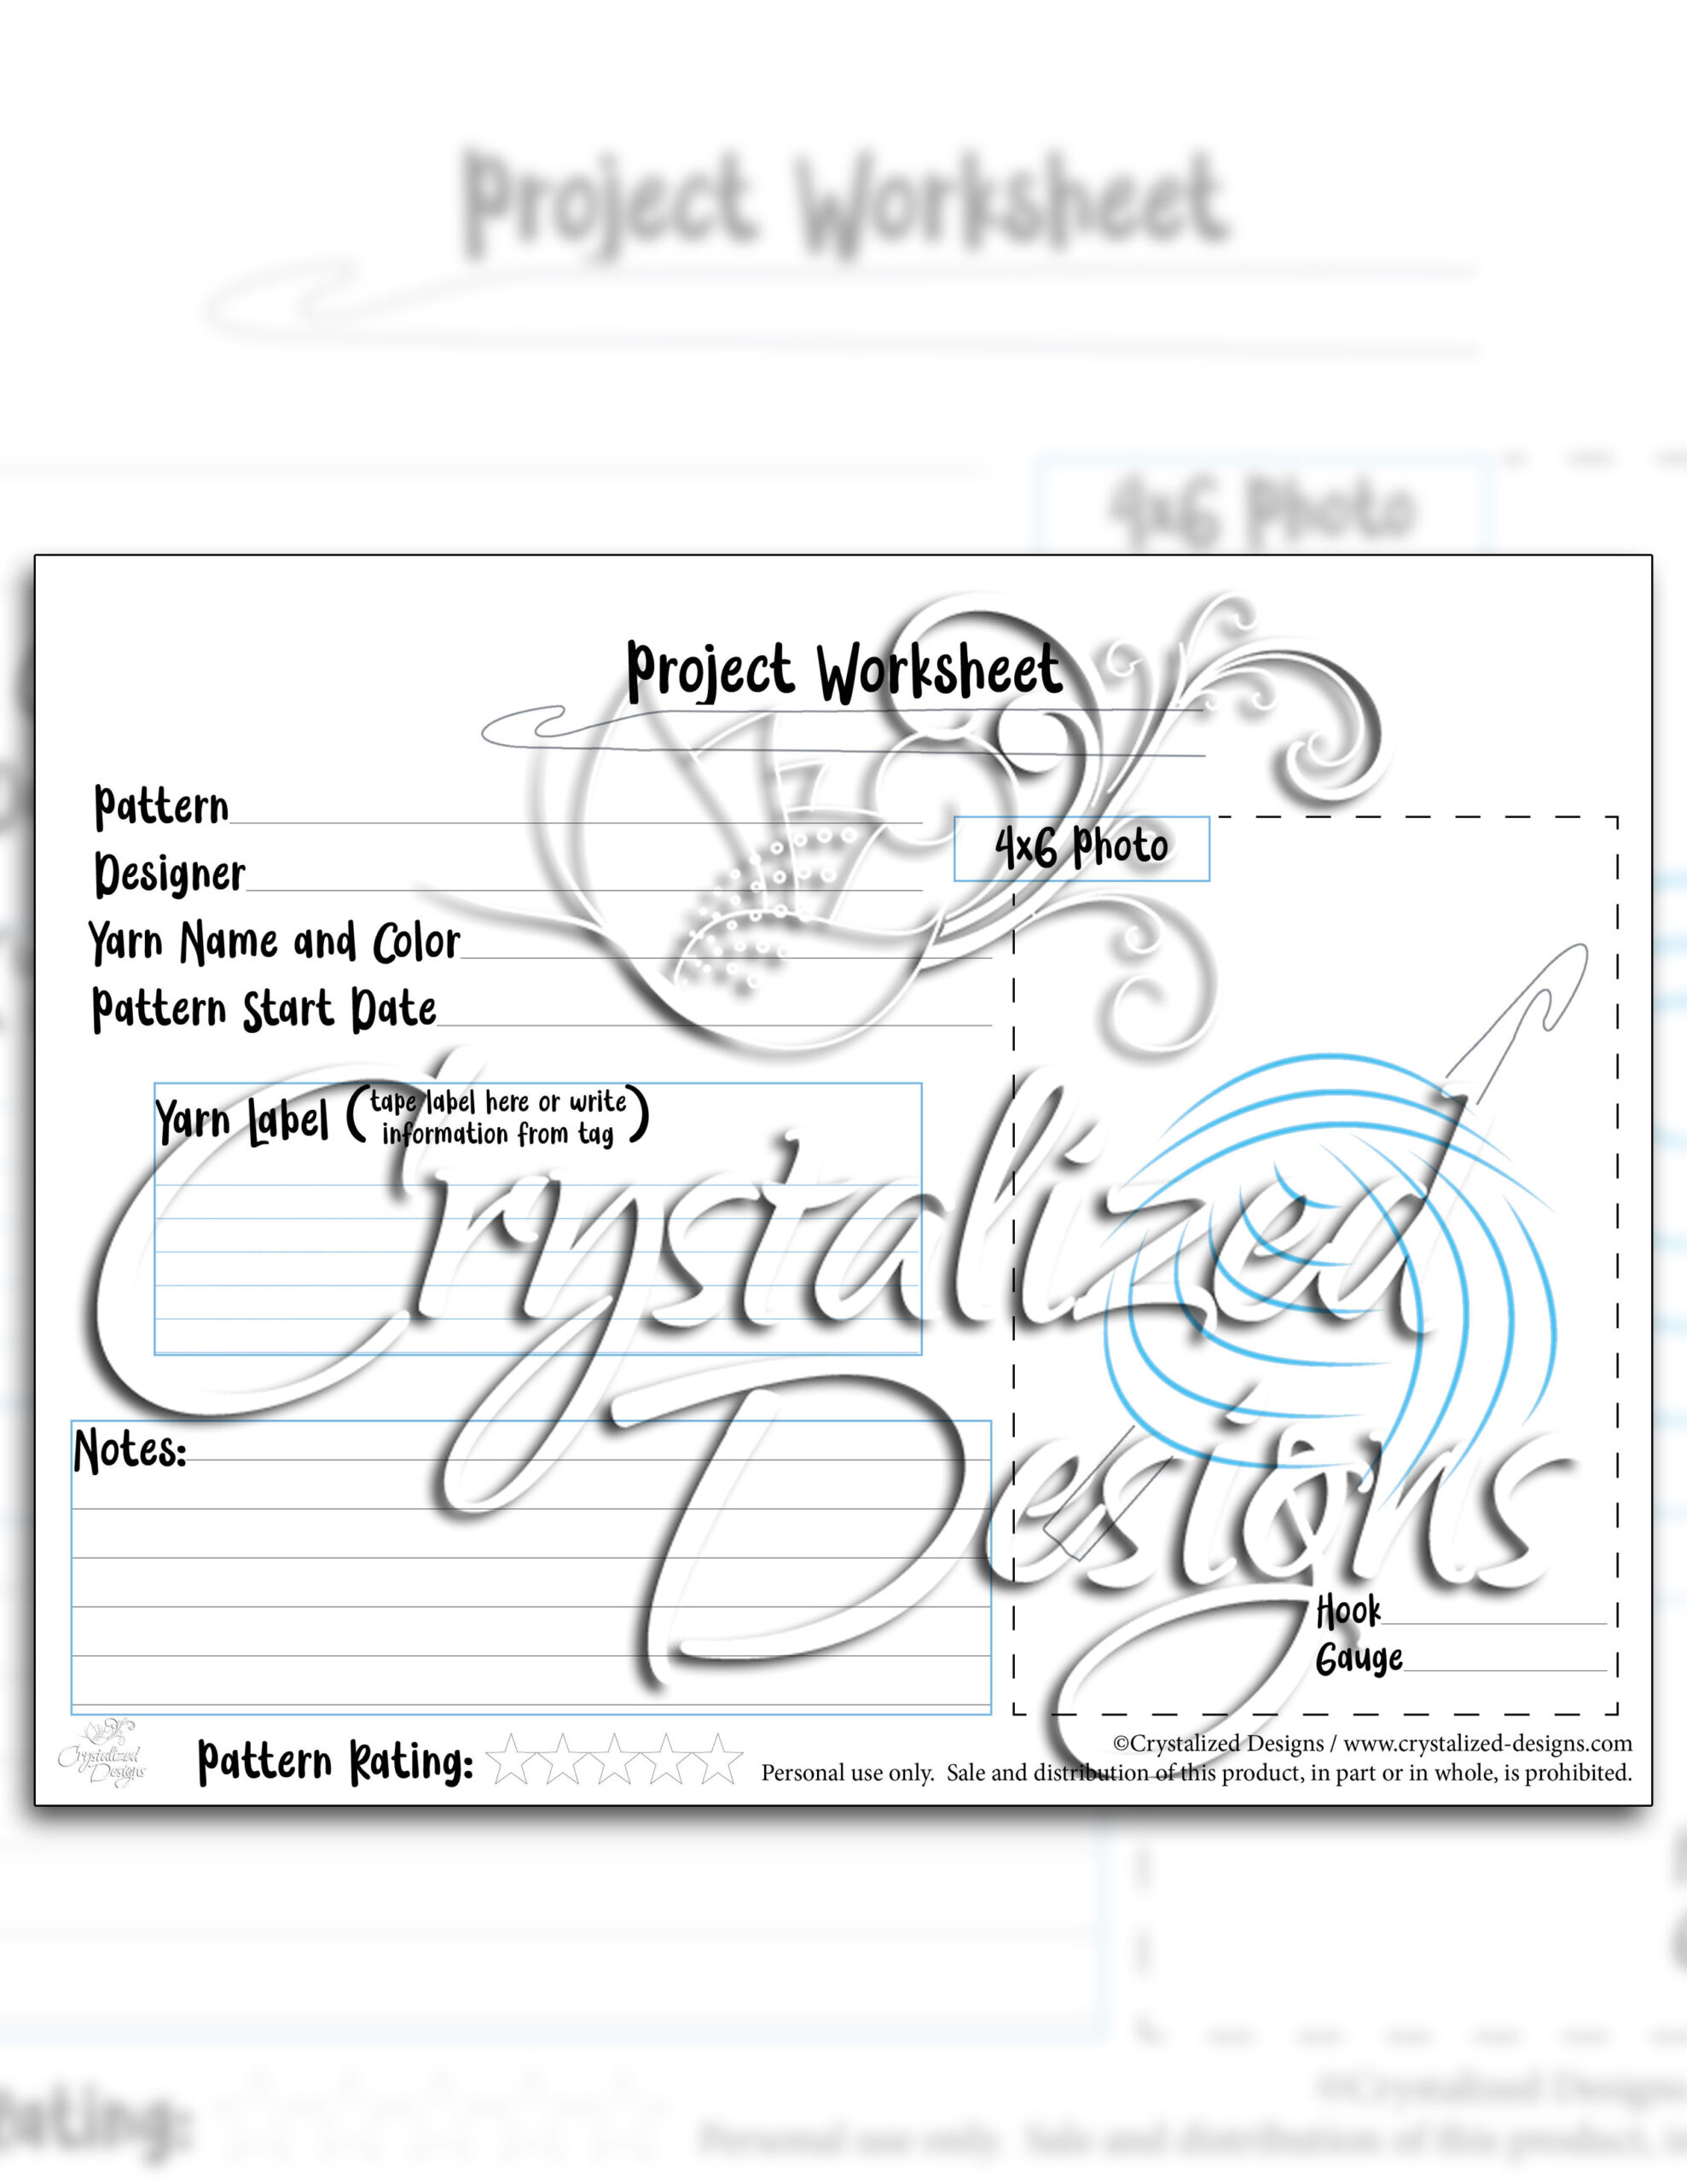 Project Worksheet By Crystalized Designs